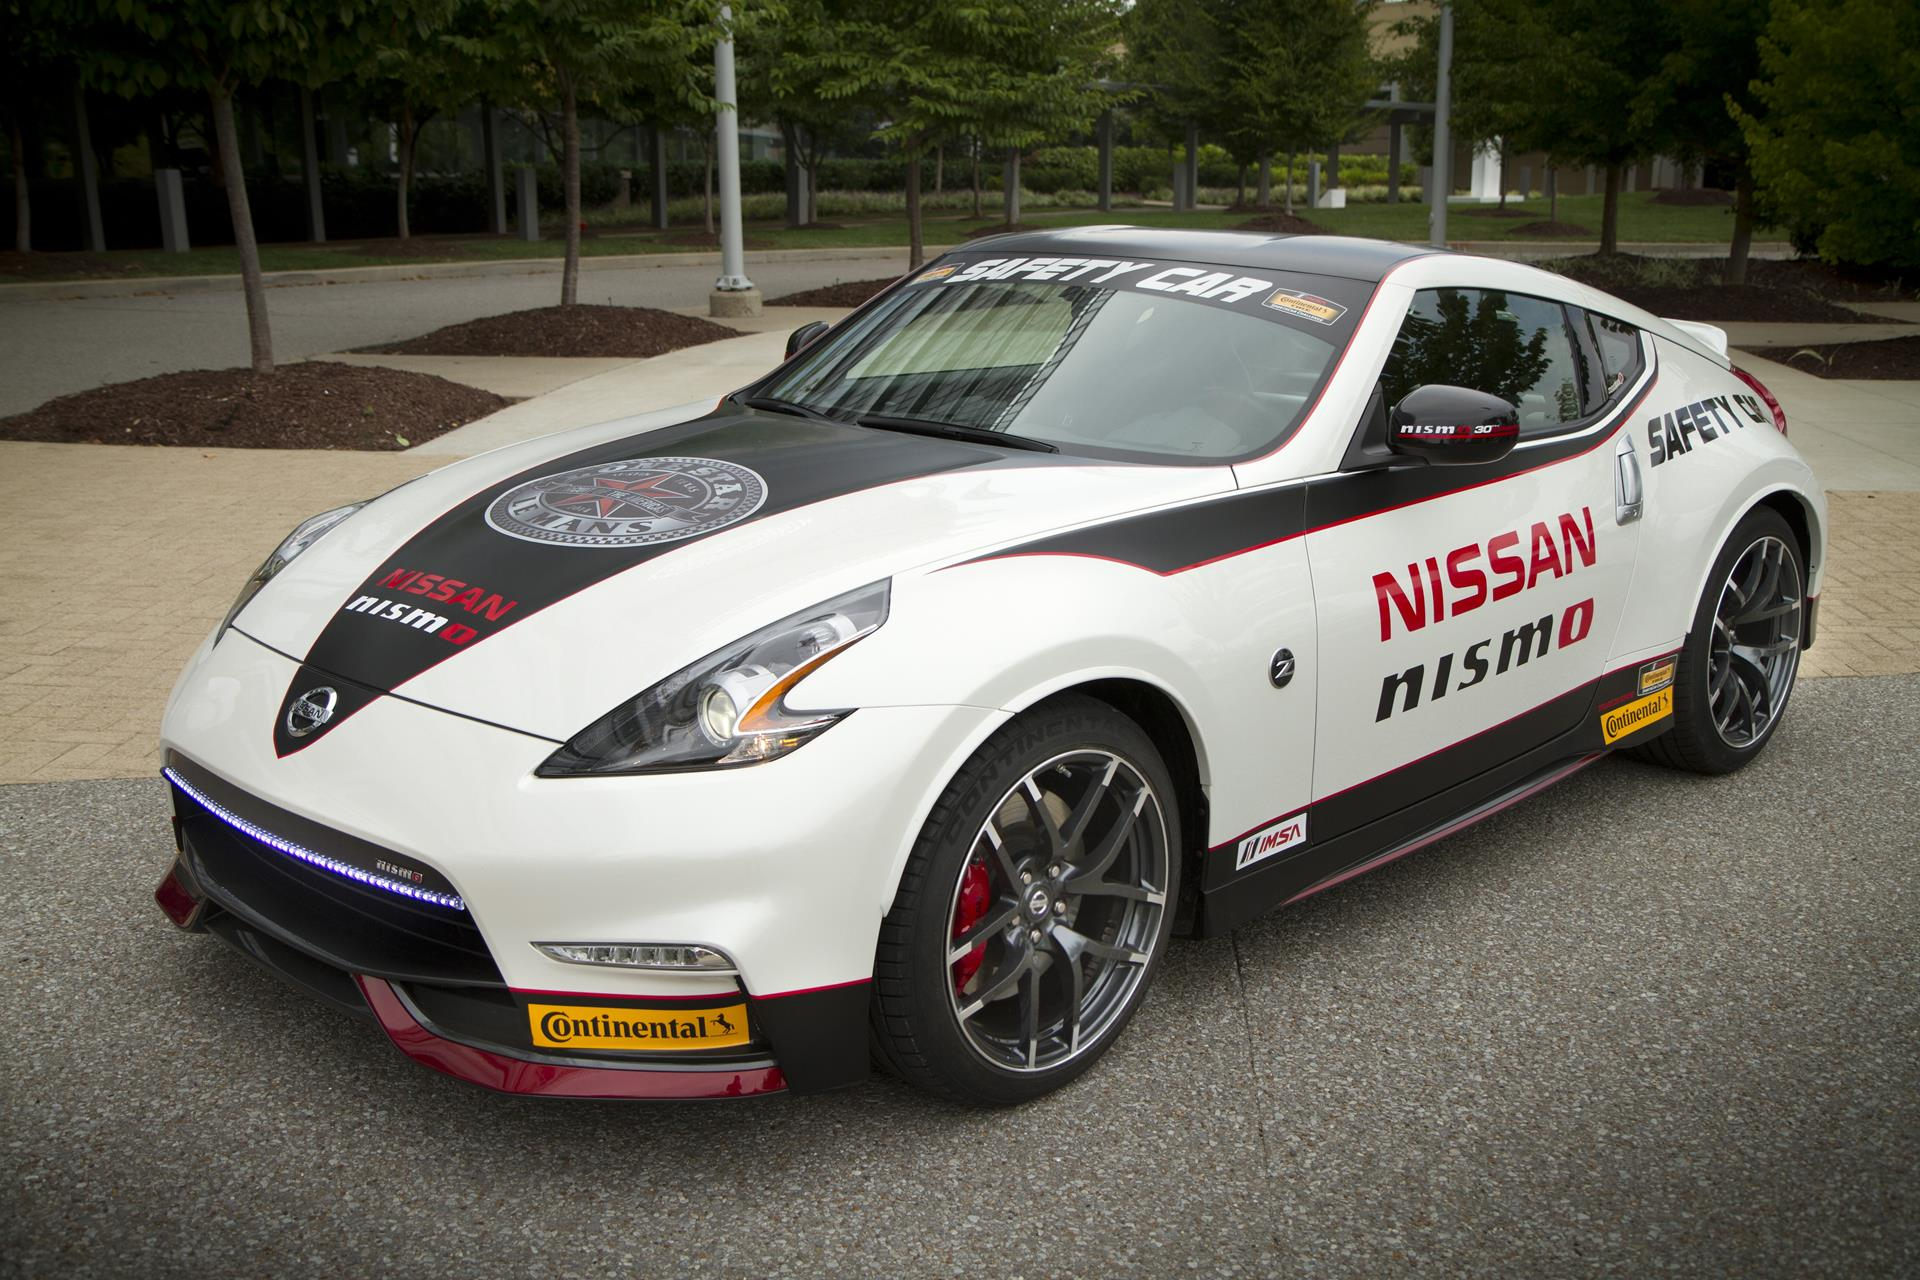 2015 Nissan 370z Nismo Safety Car News And Information